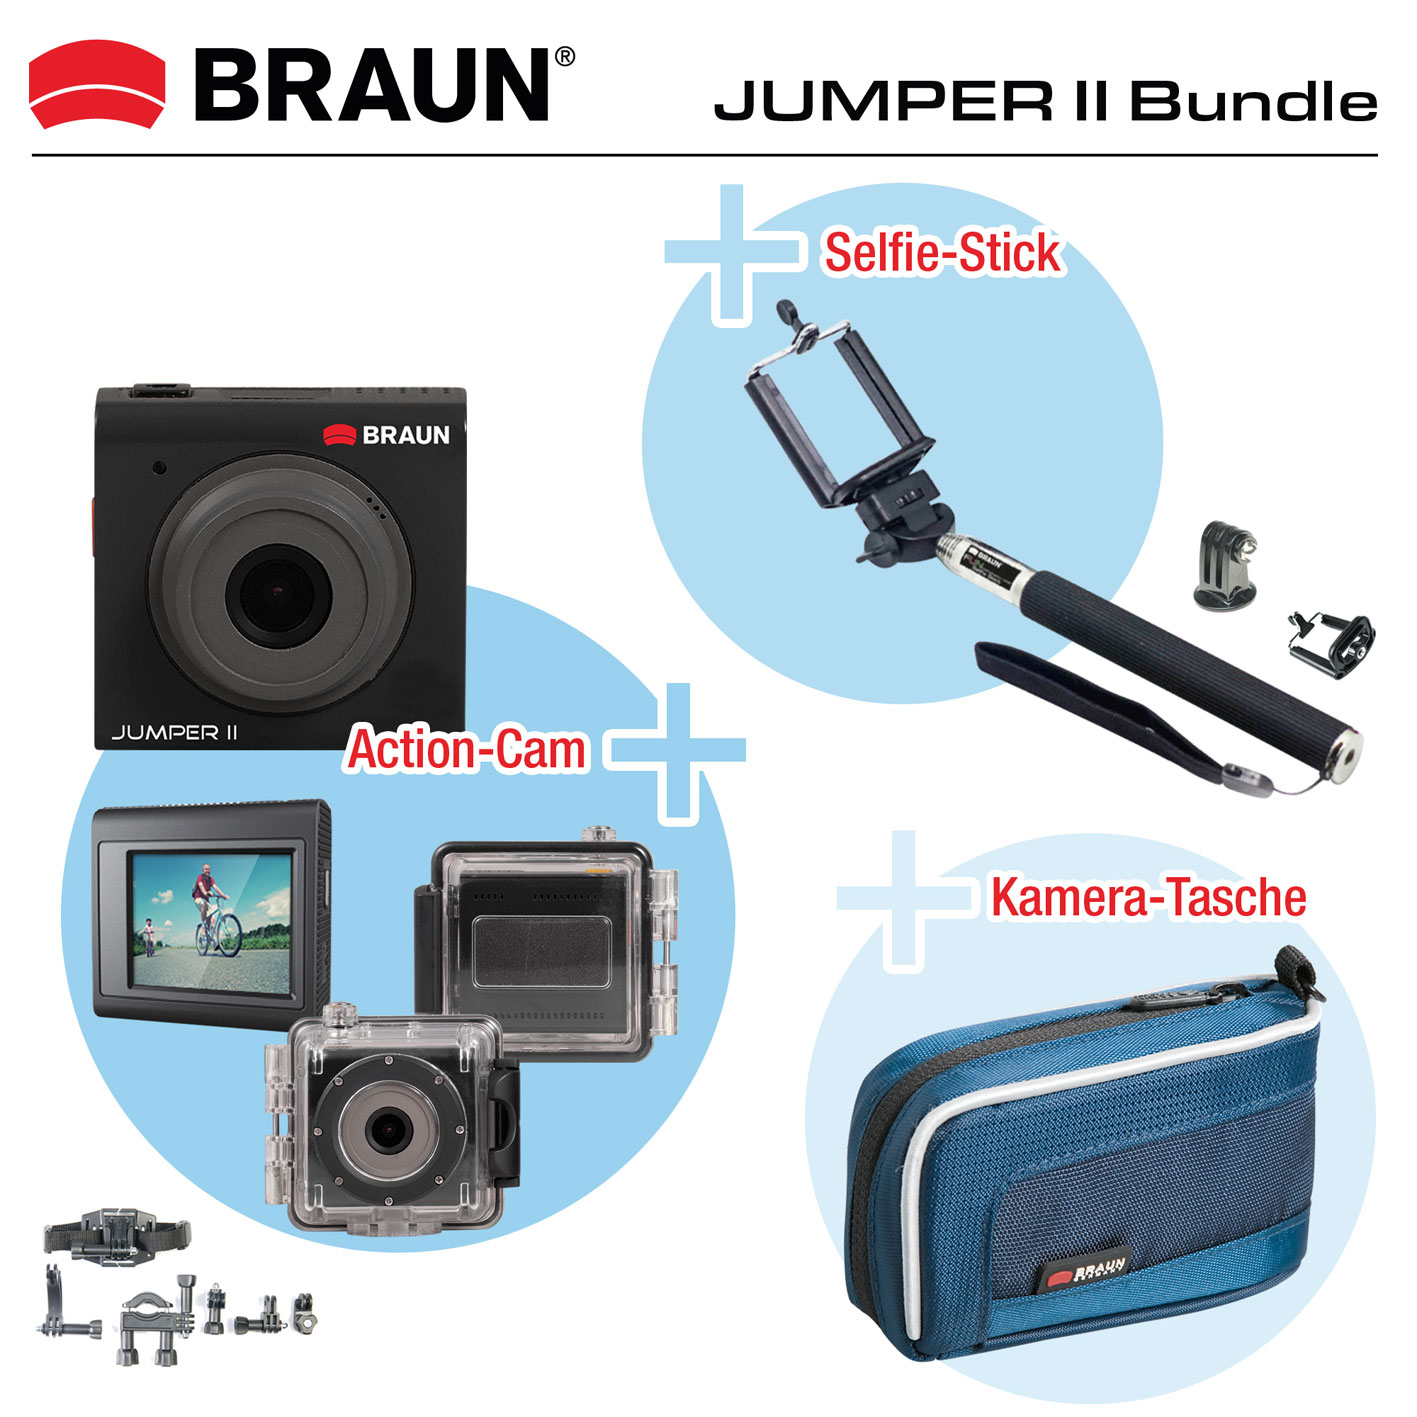 Braun Jumper II Bundle